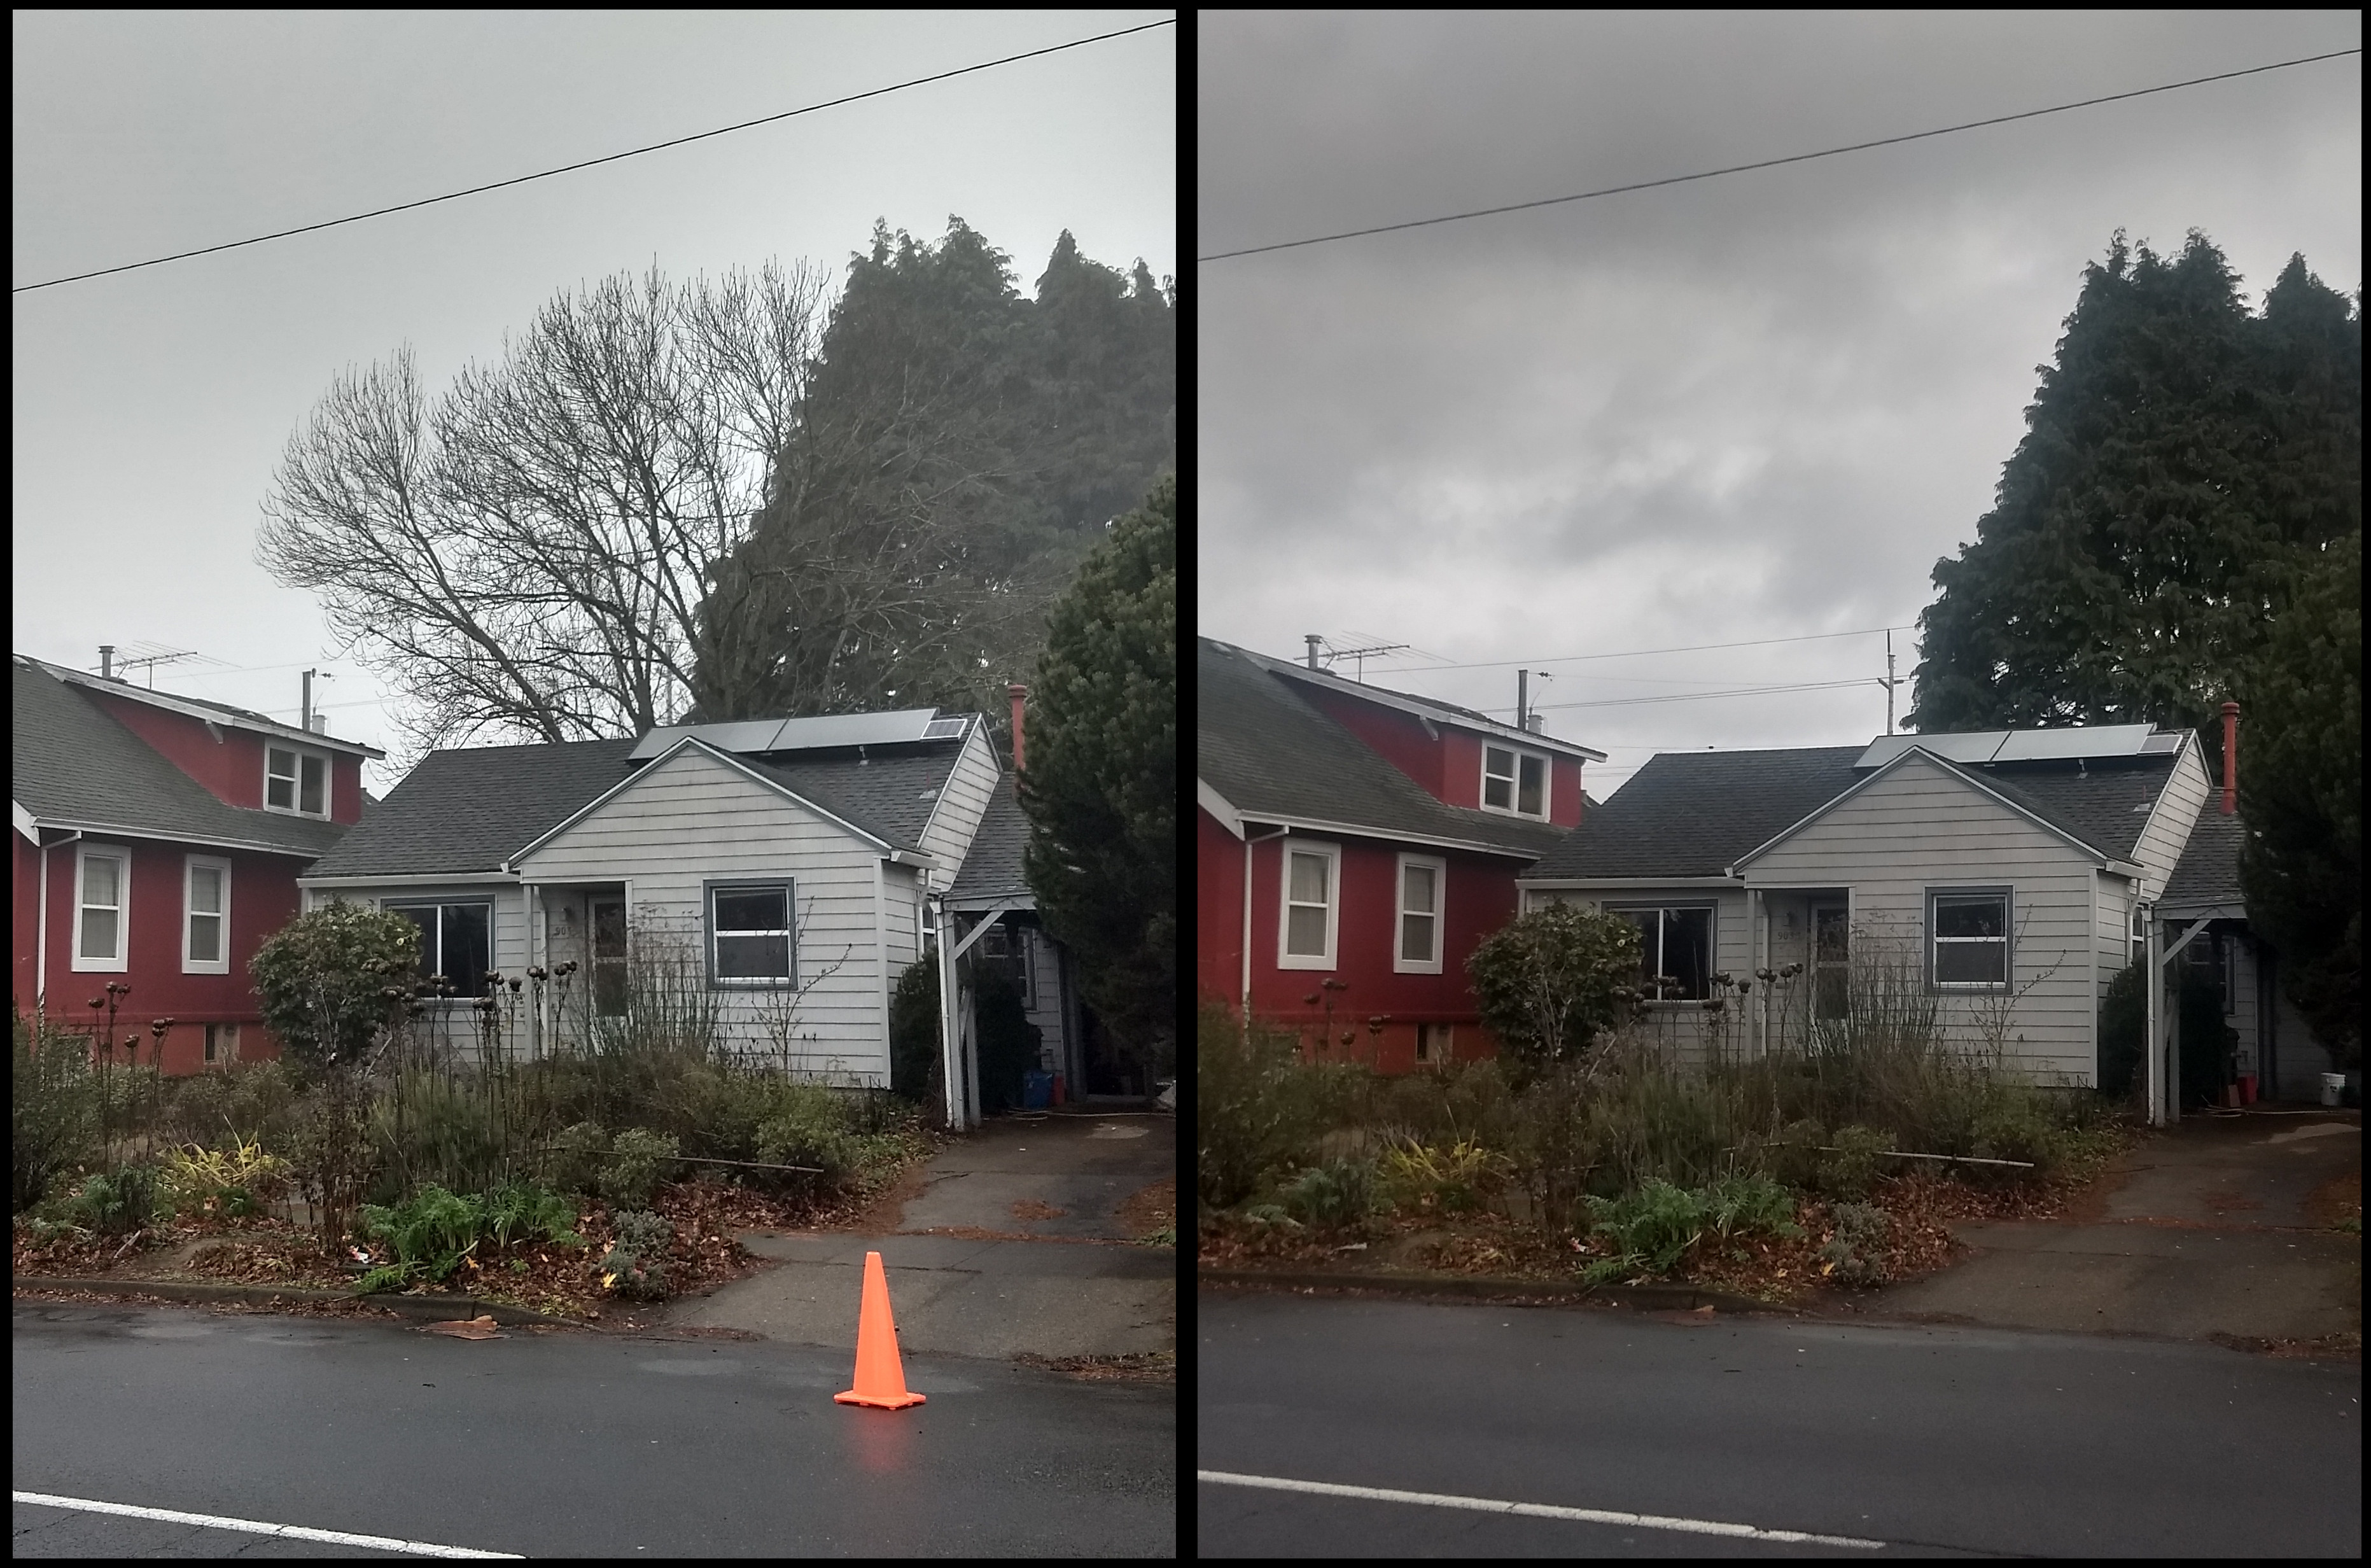 Street view before and after